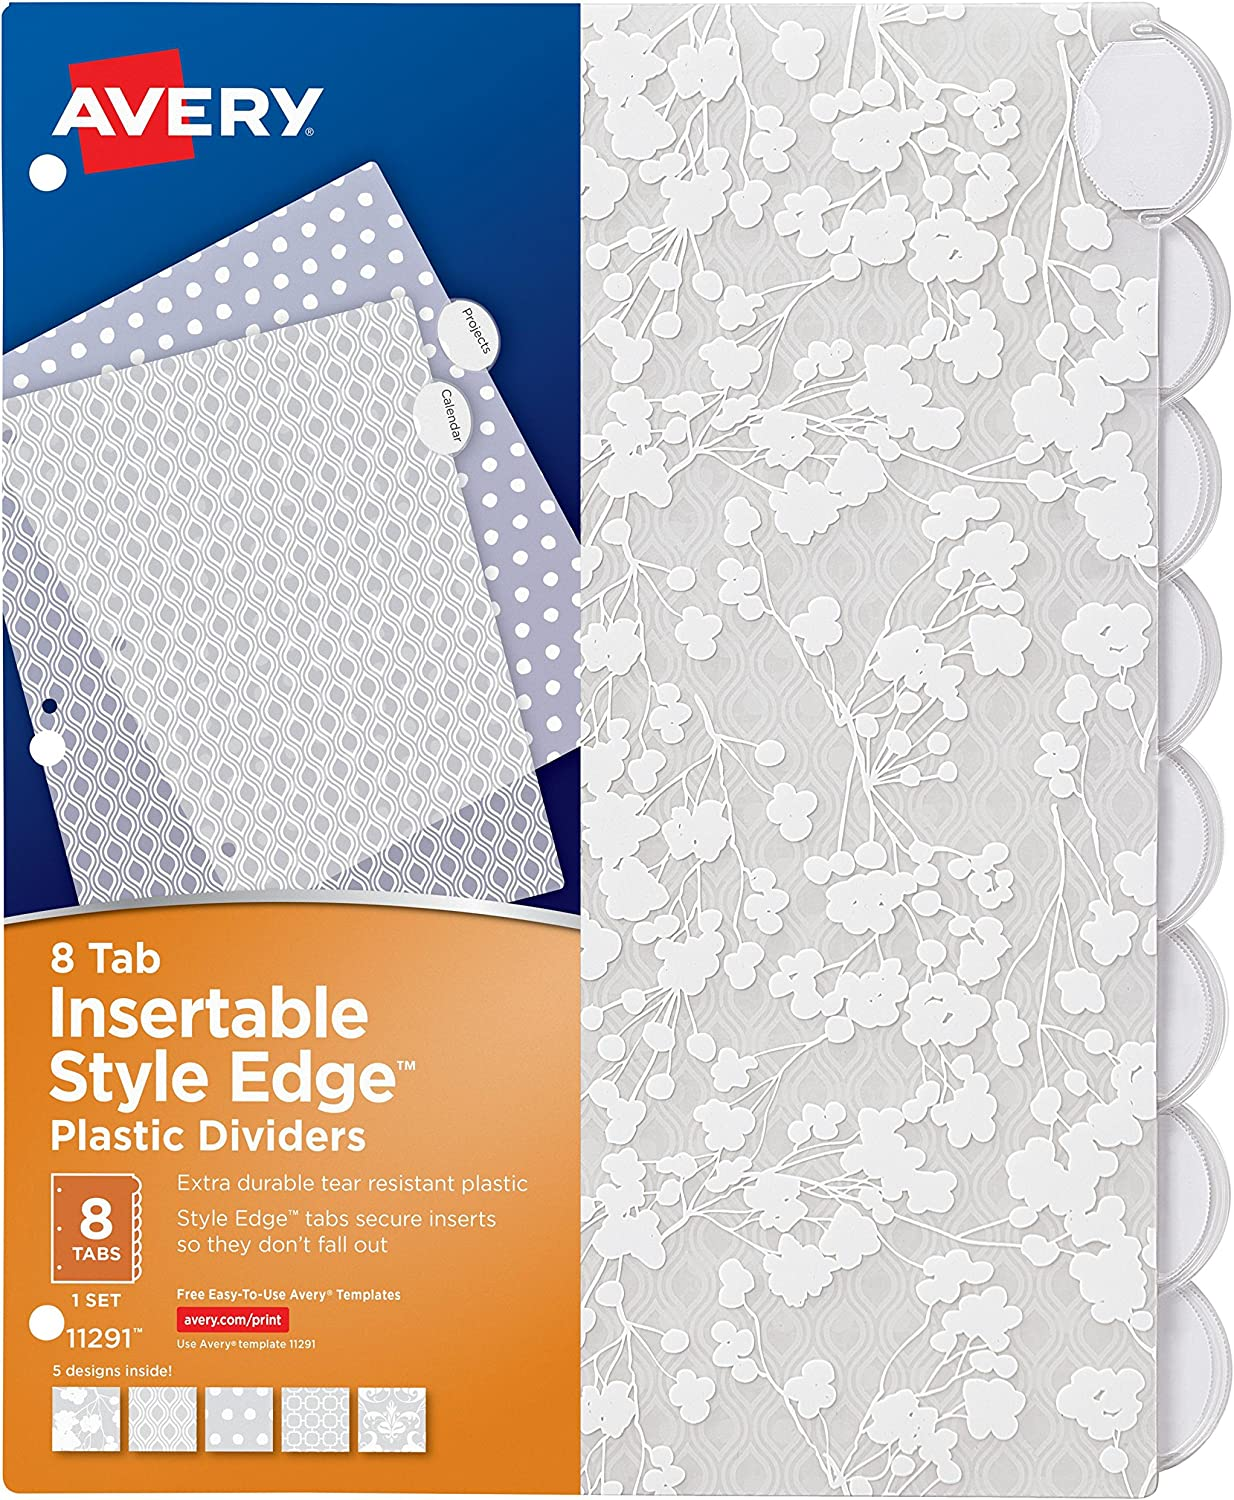 Avery Style Edge Insertable Plastic Dividers, 8 Tabs, 1 Set, Assorted Fashion Designs (11291)